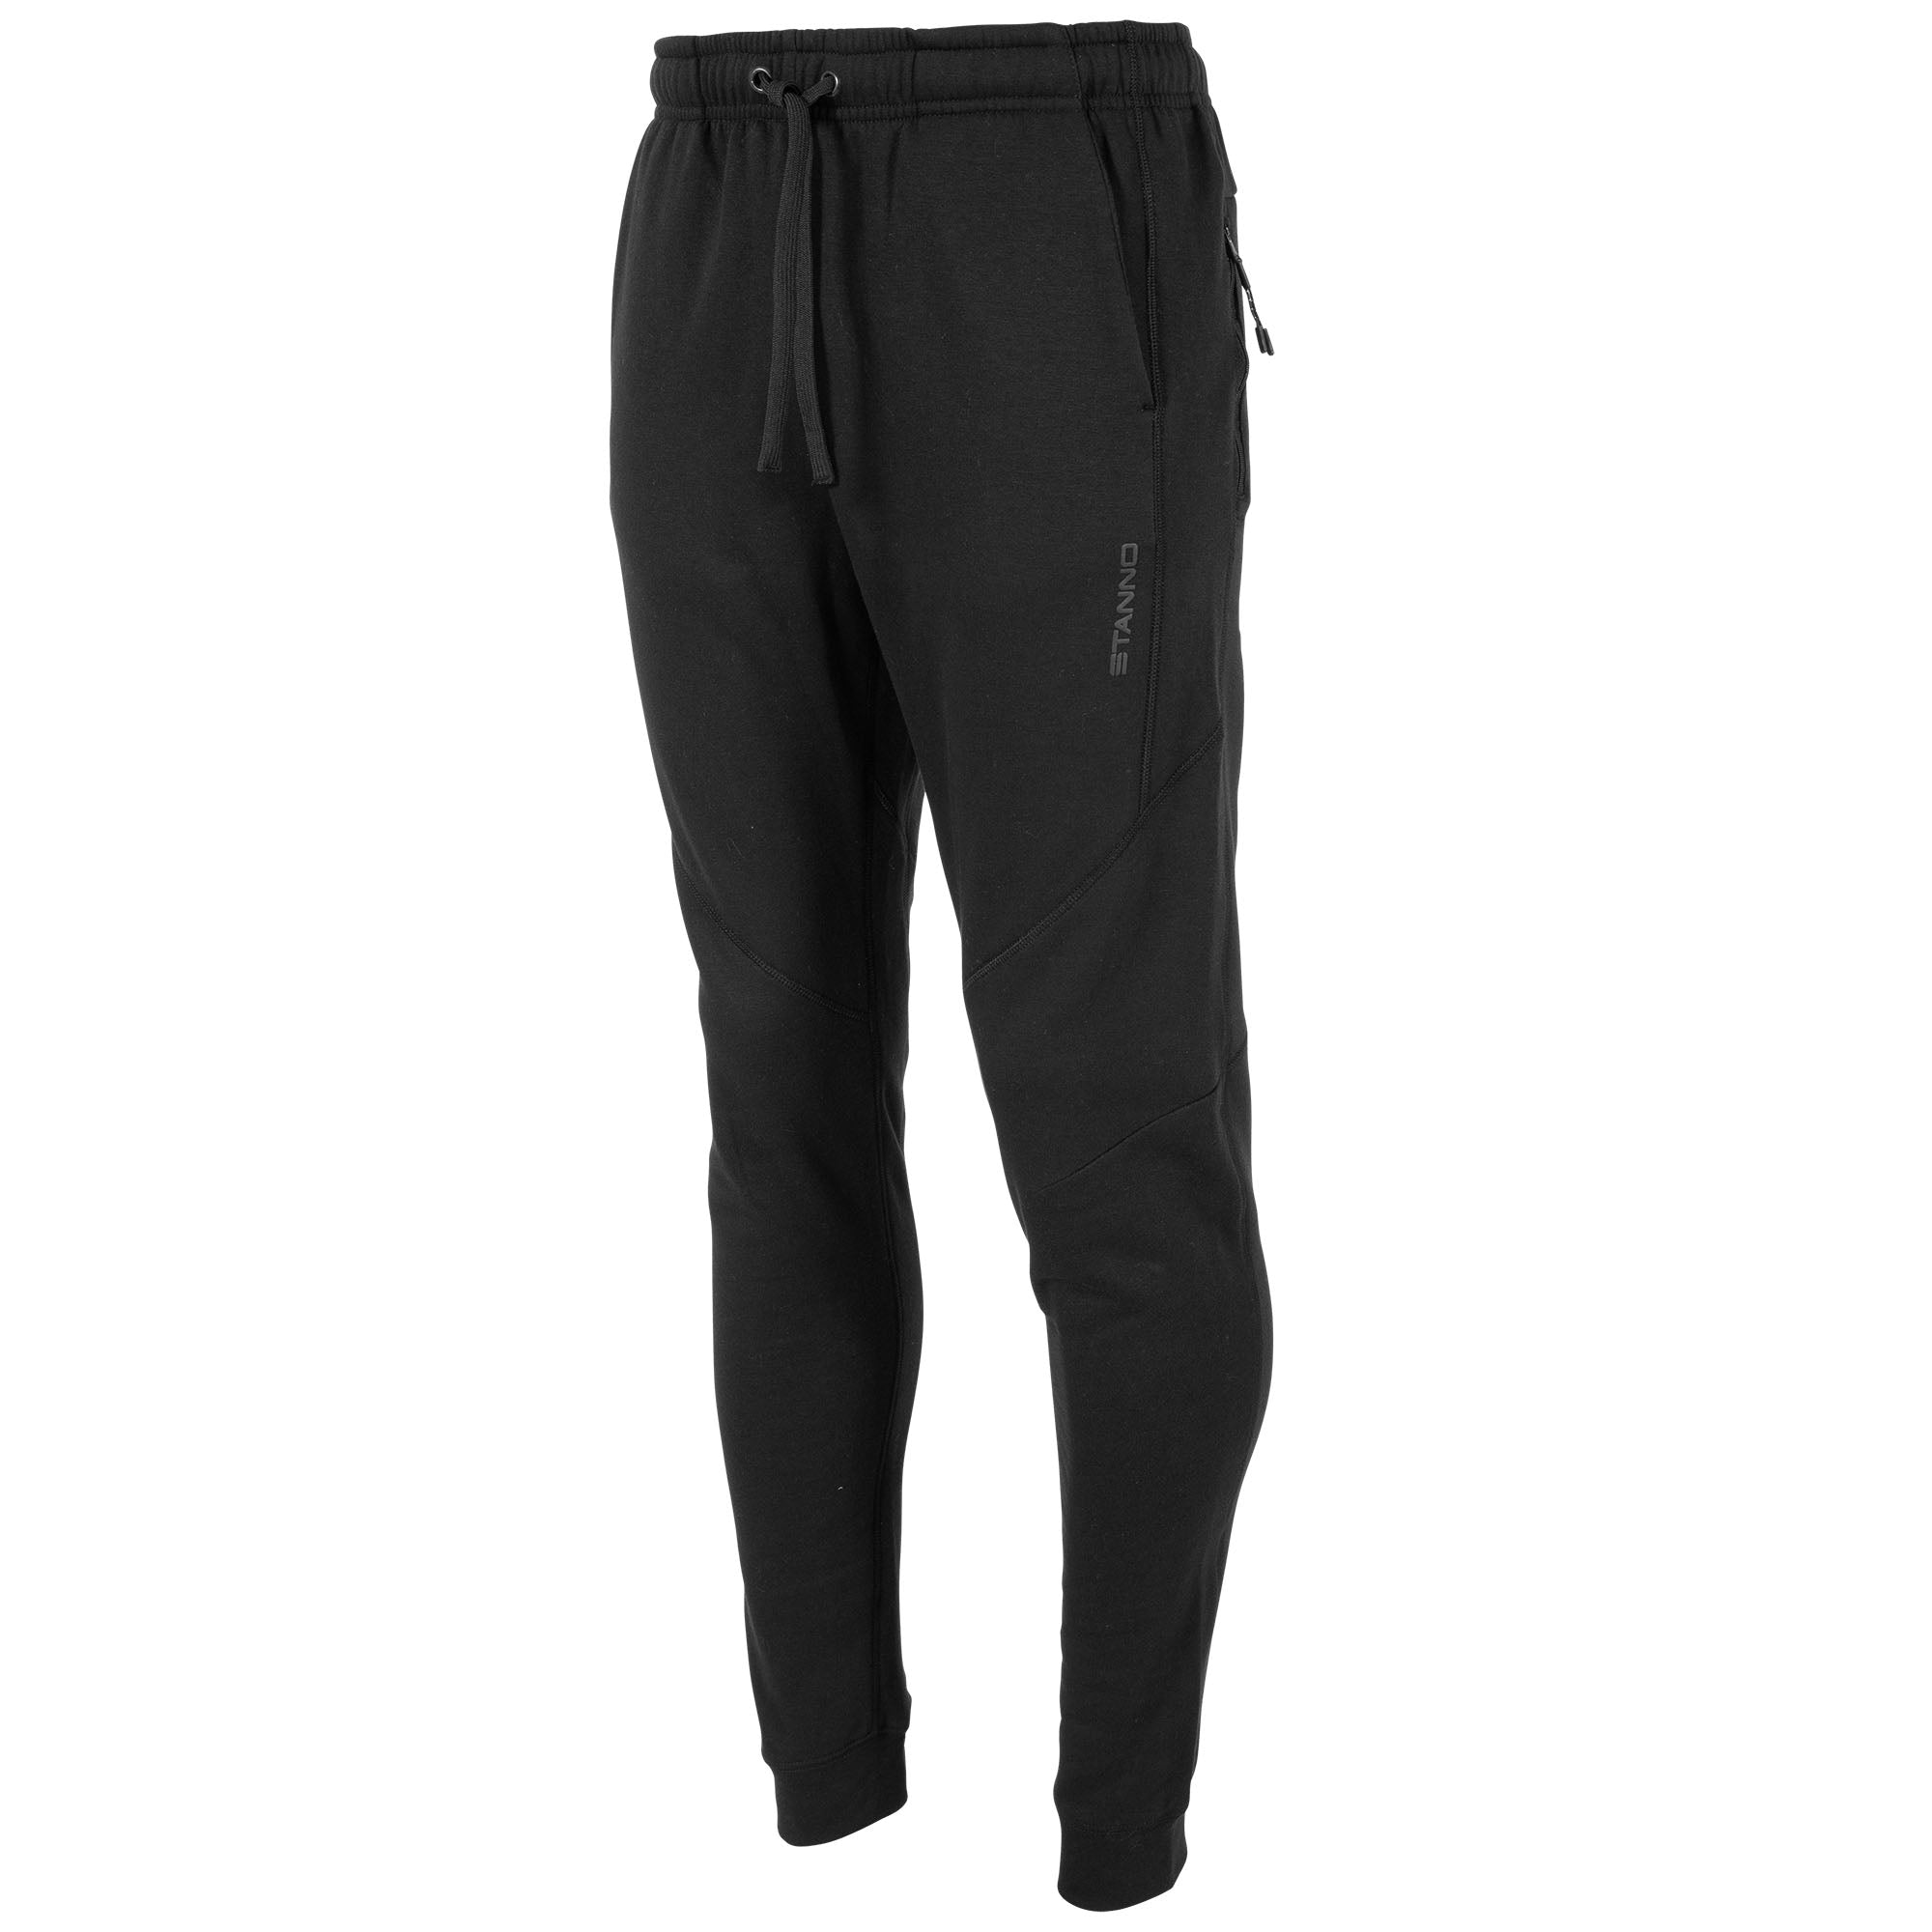 Front view of black Stanno Ease Sweat Pants with 2 side pockets and drawstring cord on waistband.